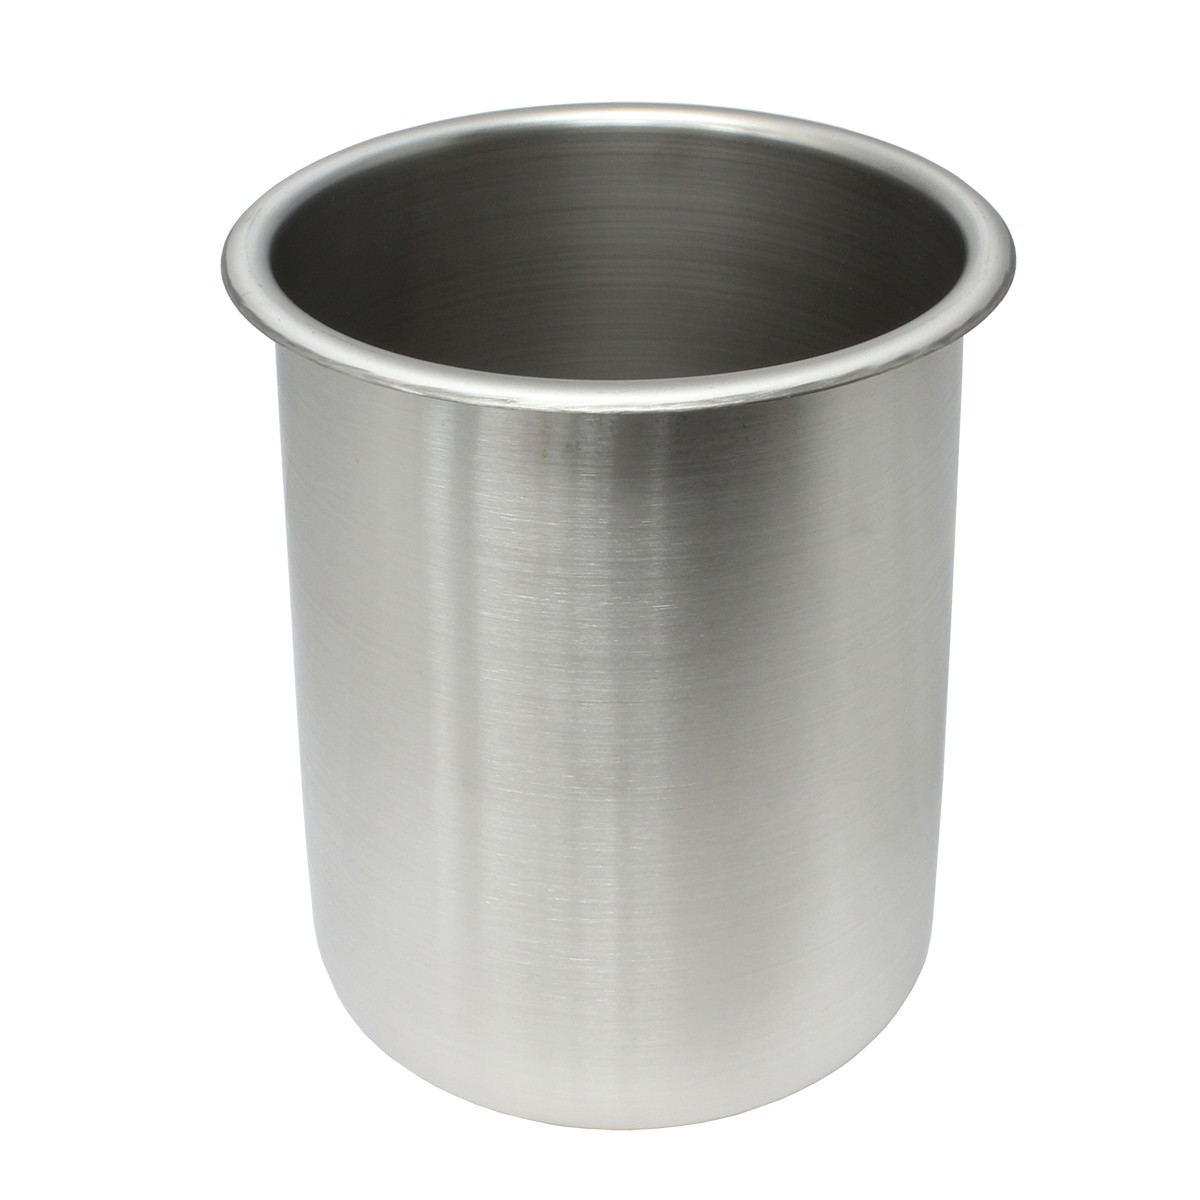 Stainless Steel Plating Tanks - 12 Qts